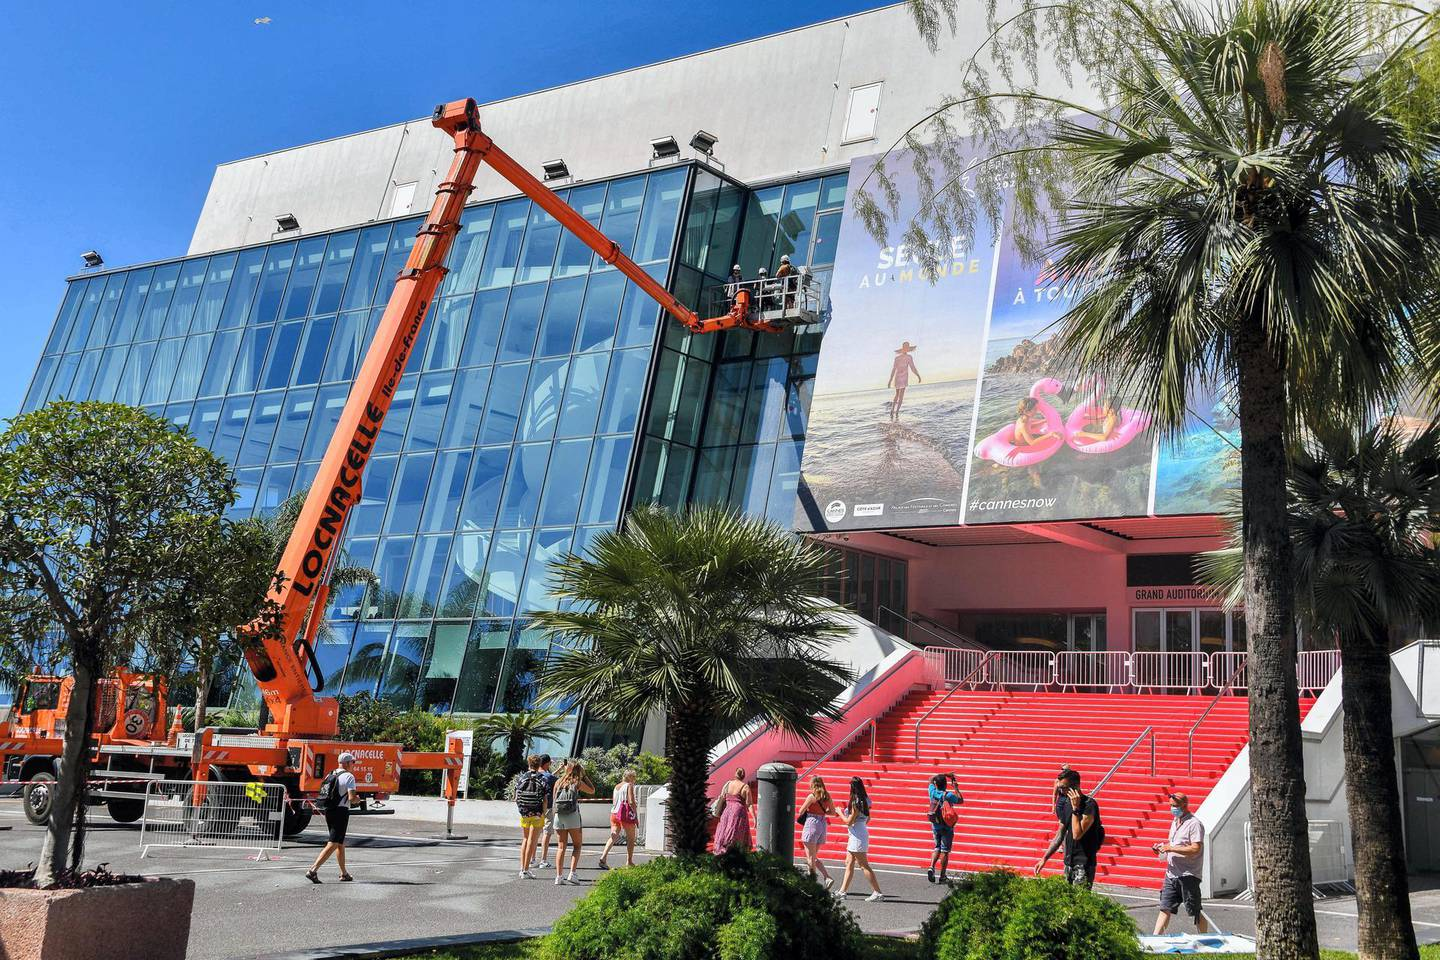 Workers wash the windows during the preparations for the Cannes festival at the Palais des Festivals in Cannes, France, on June 25, 2021. Photo by Lionel Urman/ABACAPRESS.COM